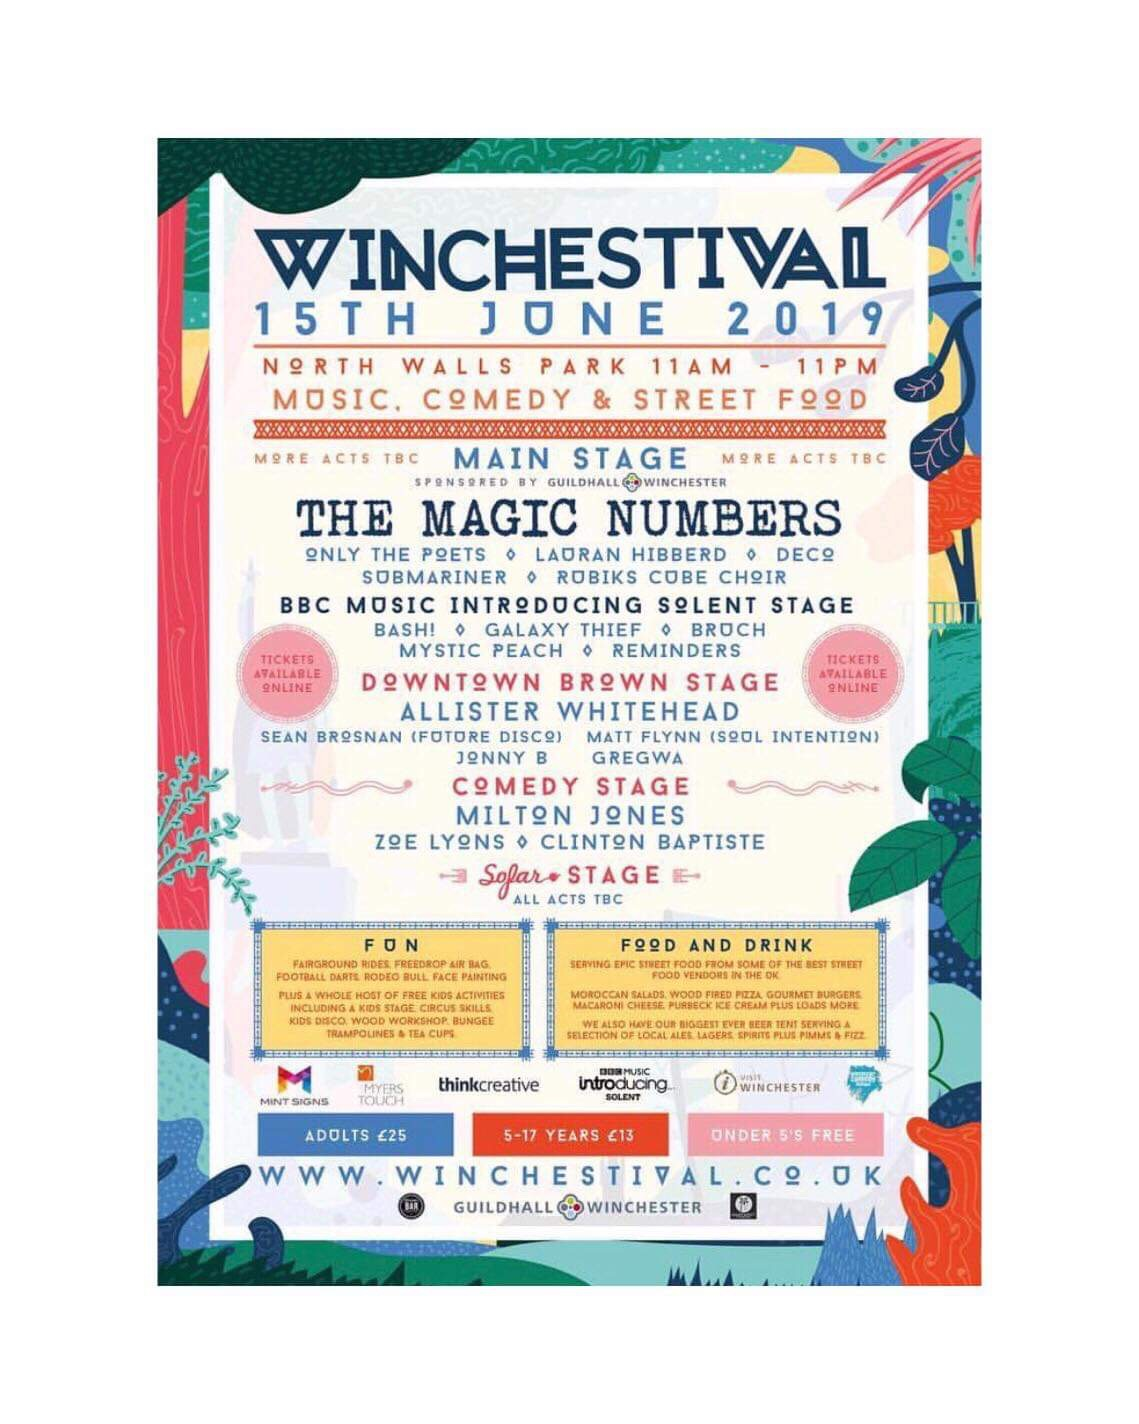 Winchestival - June 2019,Well the rain did not hold us back in Winchester! Saturday, 15th June there was live music, street food two 30 min yoga classes with me in the big tent!